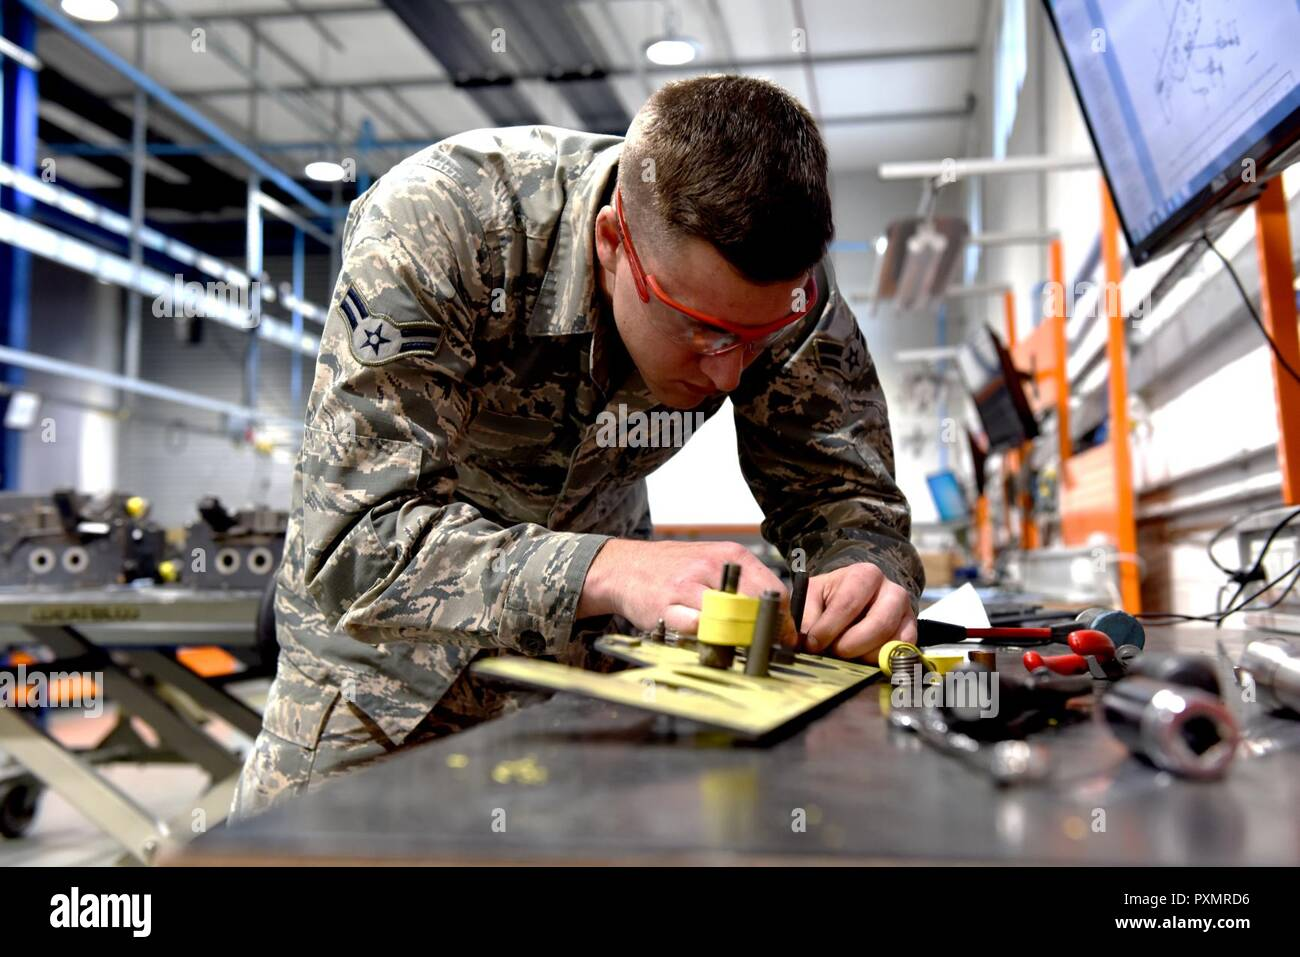 air force munitions systems - Monza berglauf-verband com